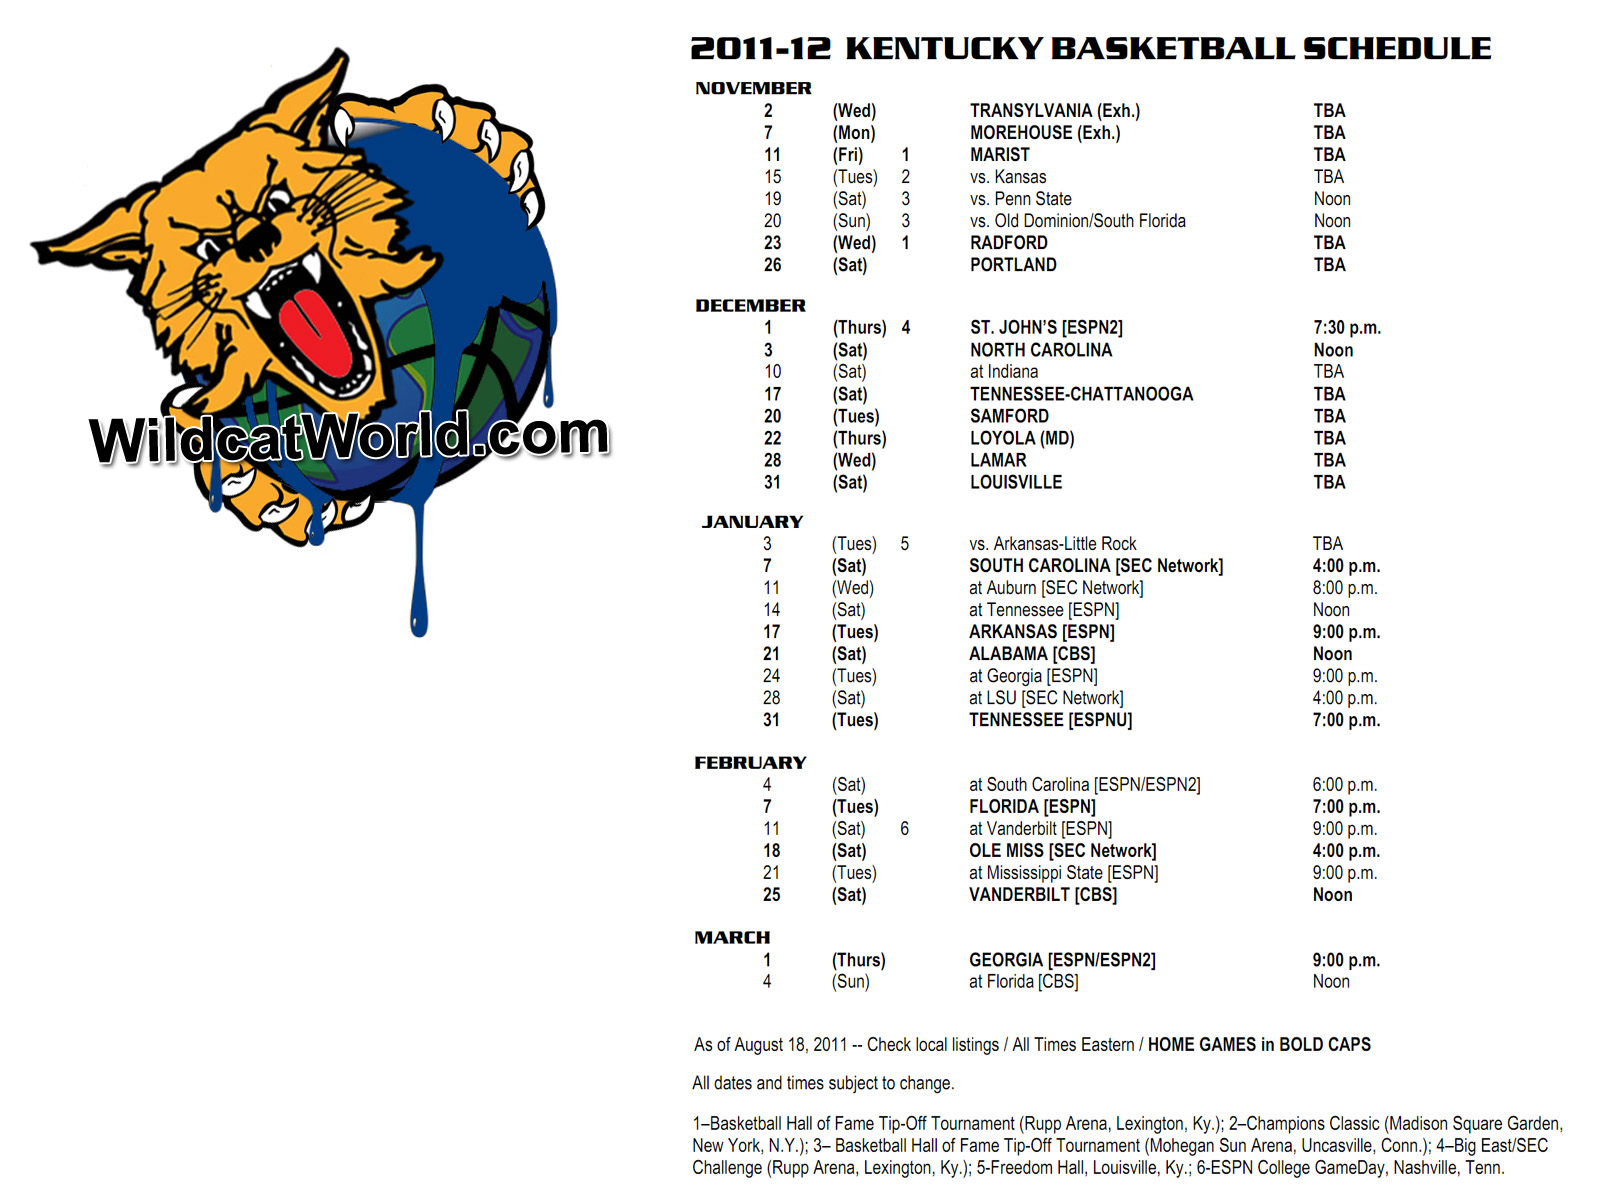 Uk Basketball Schedule: The 2011-2012 Kentucky Basketball Schedule As A Desktop